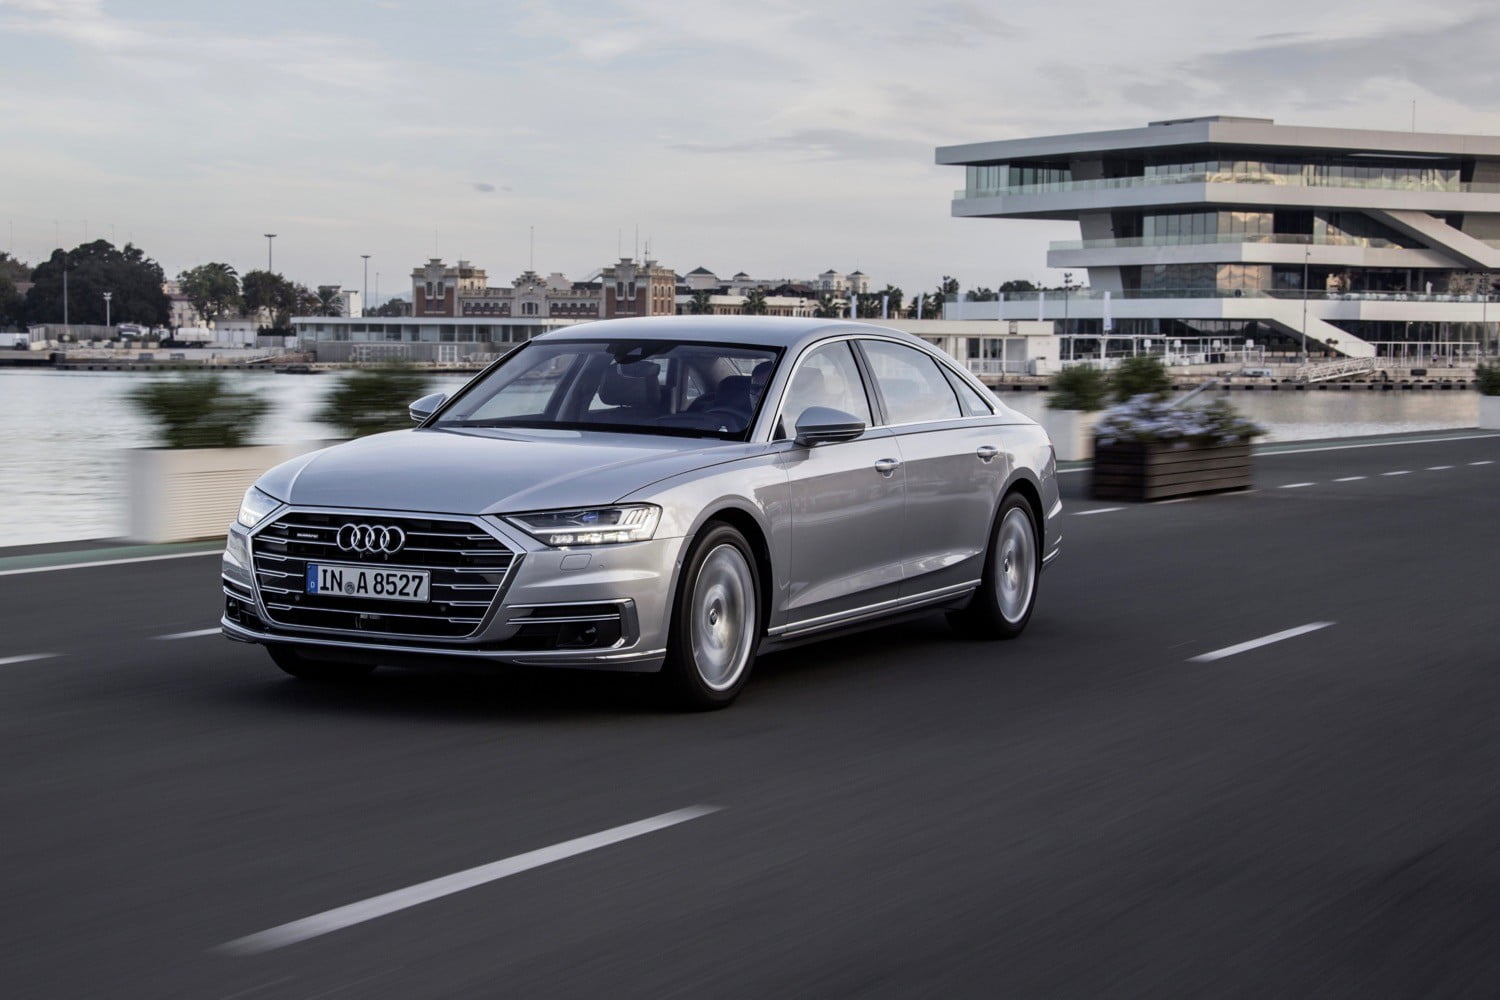 2019 Audi A8 Won't Get Traffic Jam Pilot in the United States | Digital  Trends